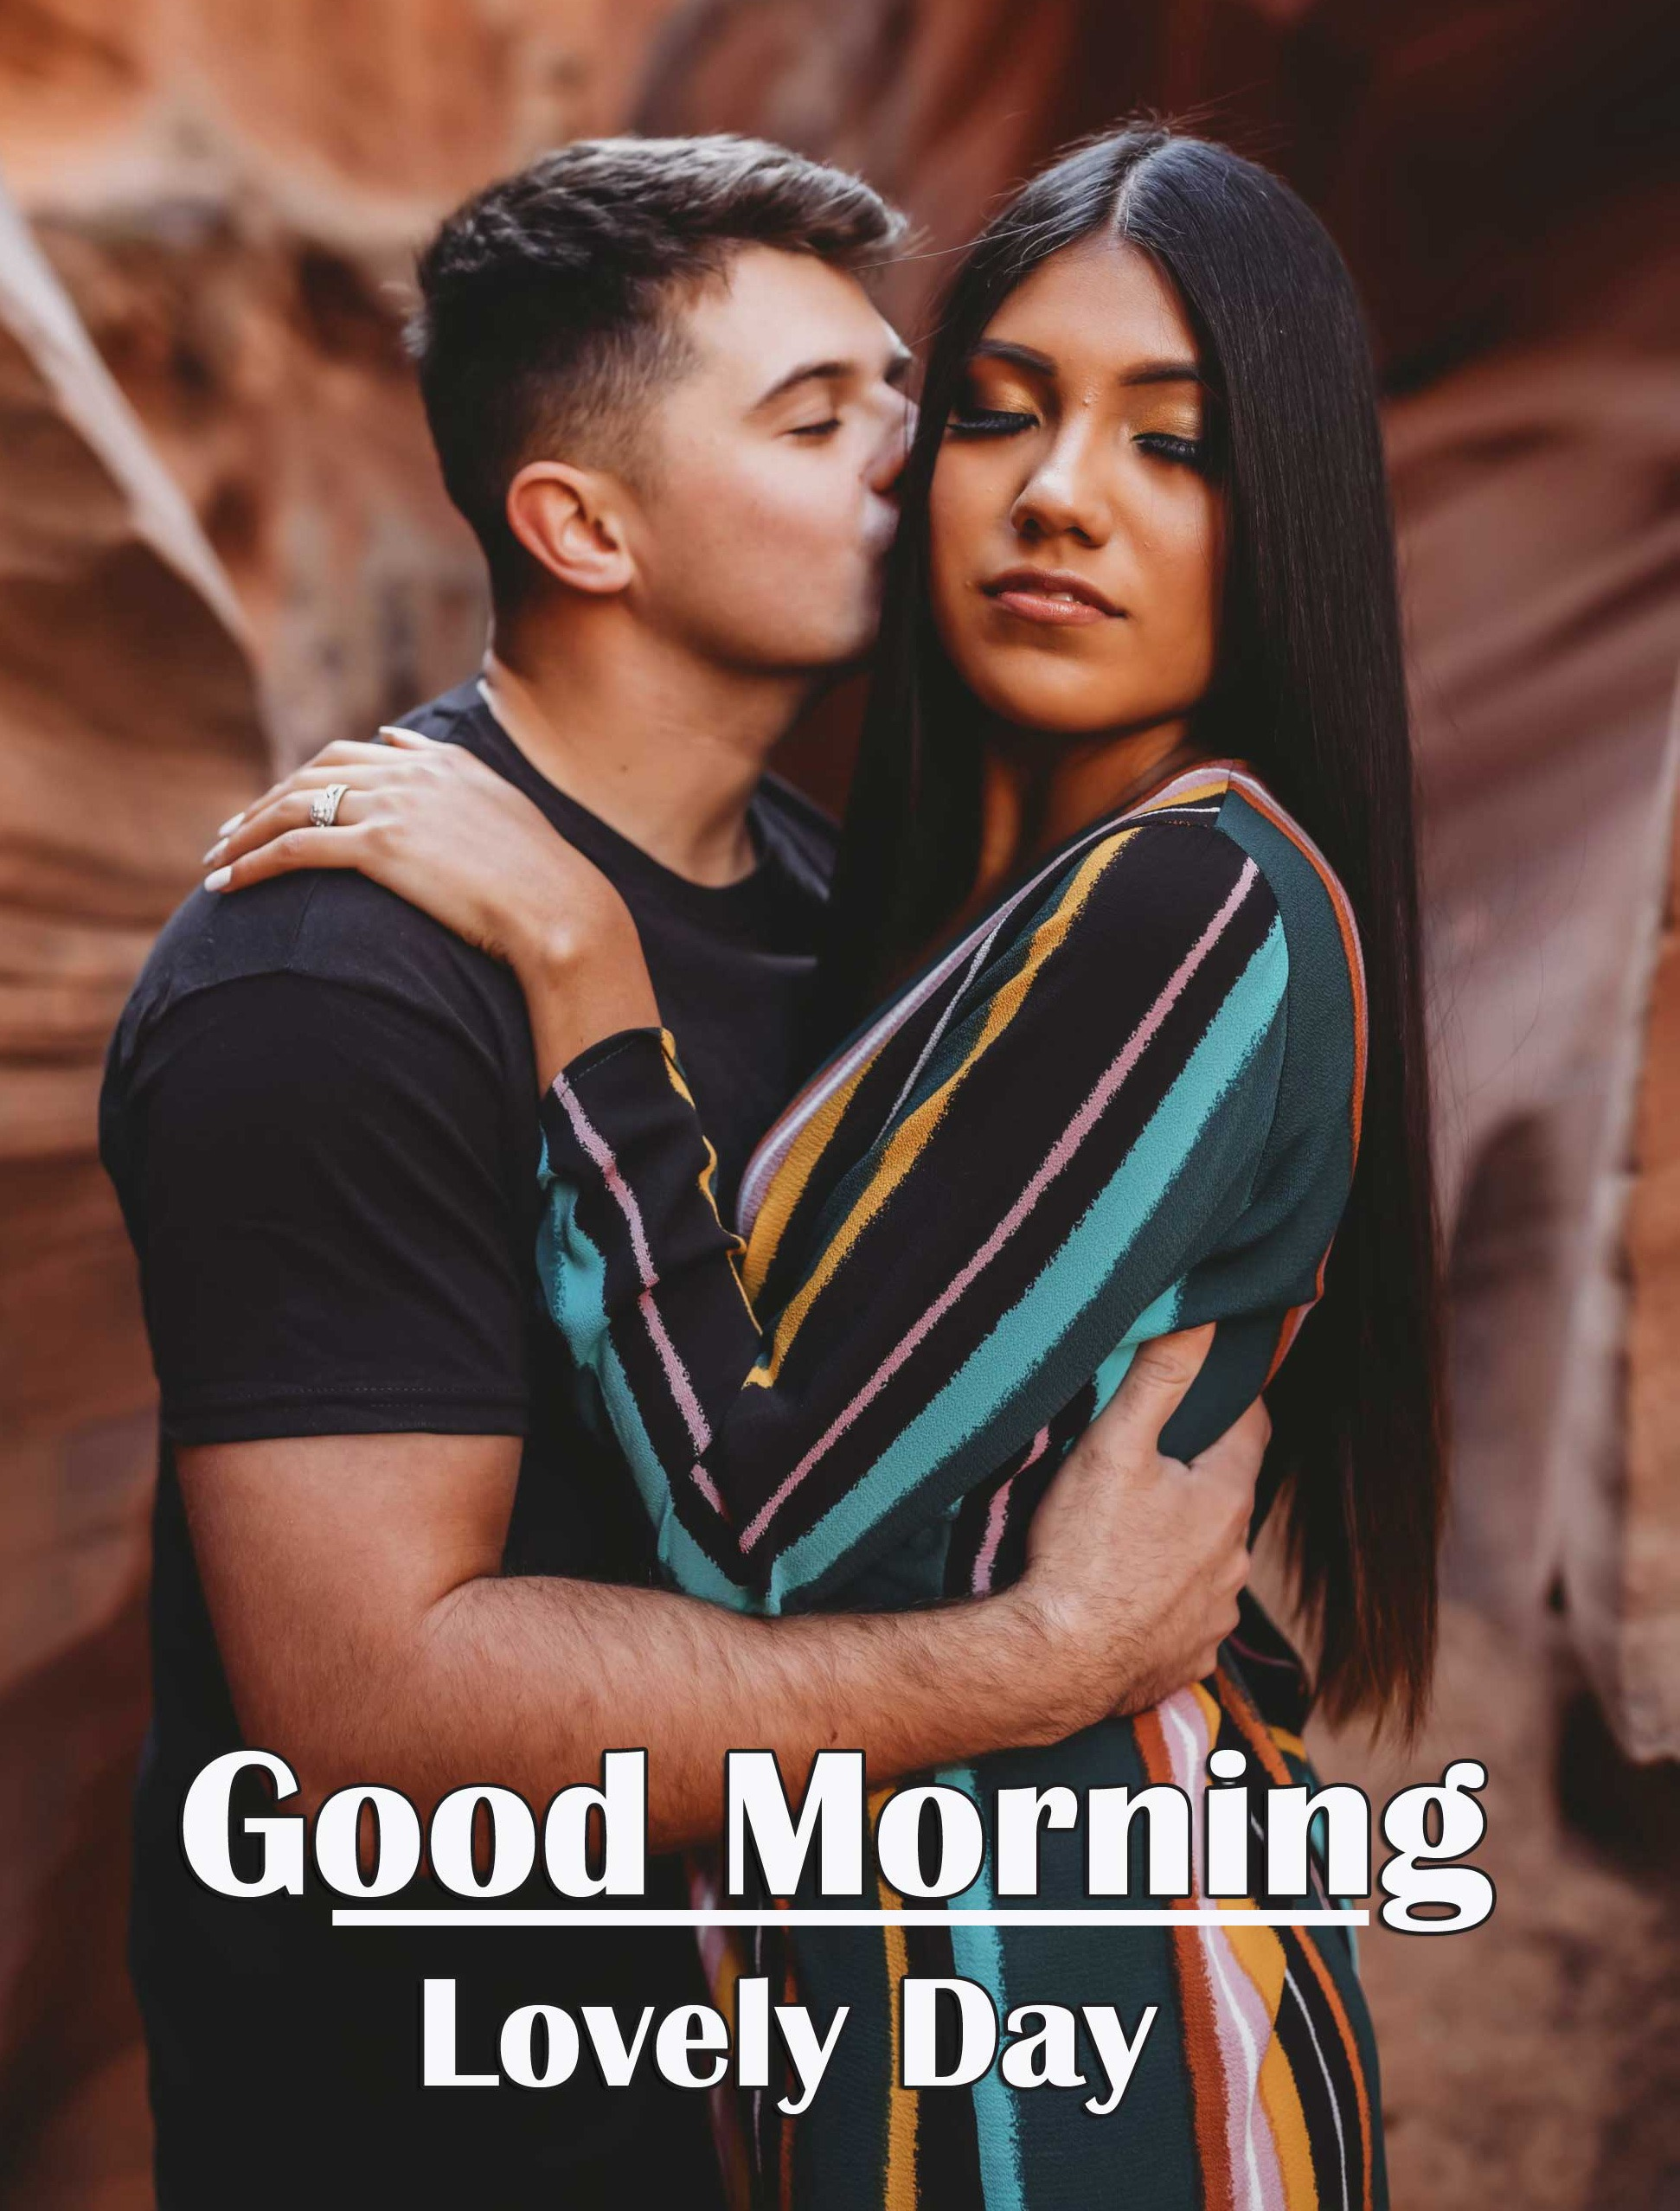 Best Love Couple Good Morning Wishes Images Pics Free Latest